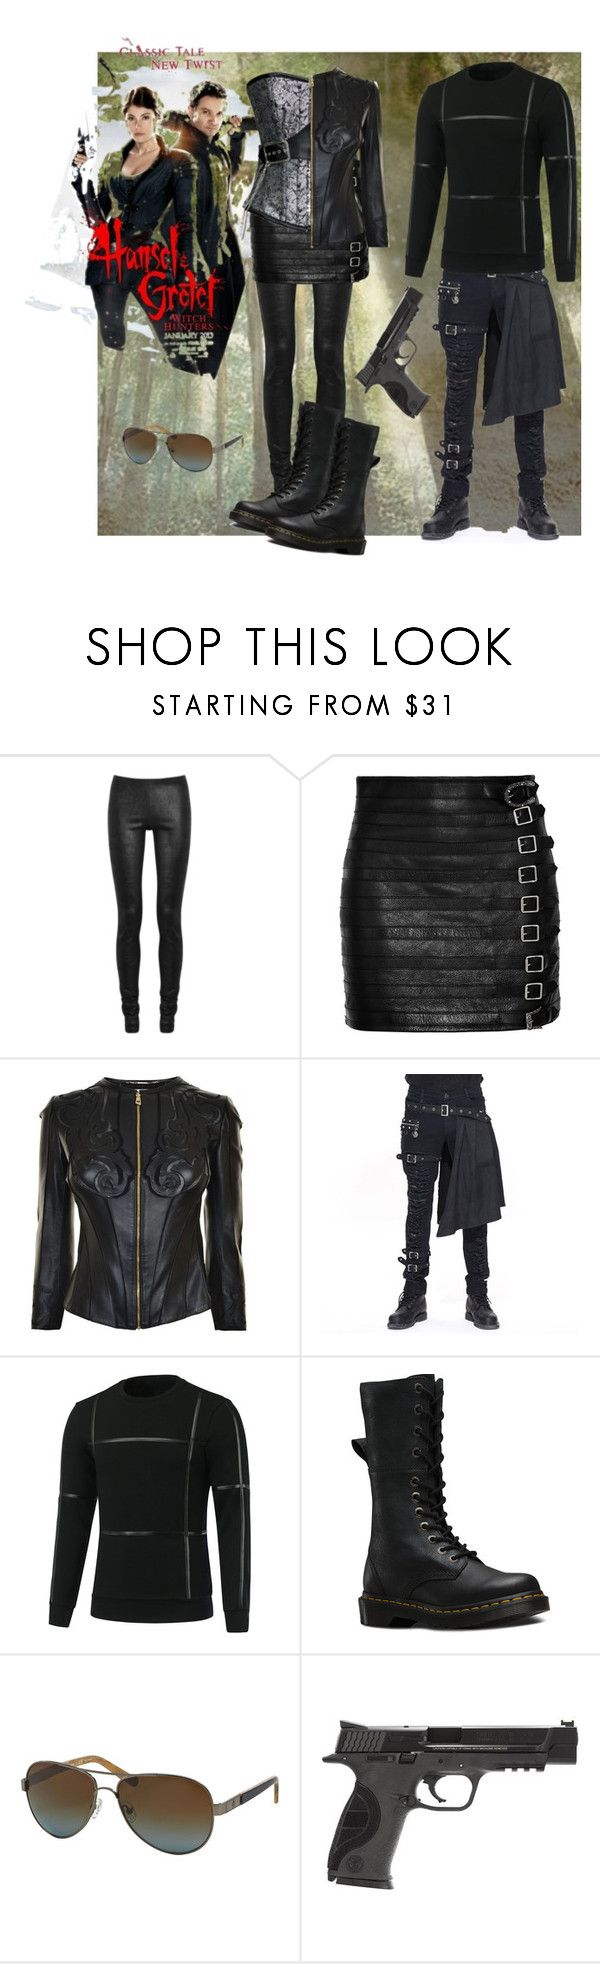 """""""Hansel & Gretel - Witch hunters"""" by cristinaconst ❤ liked on Polyvore featuring Rick Owens, Gucci, Versace, Dr. Martens, Tory Burch and Smith & Wesson"""